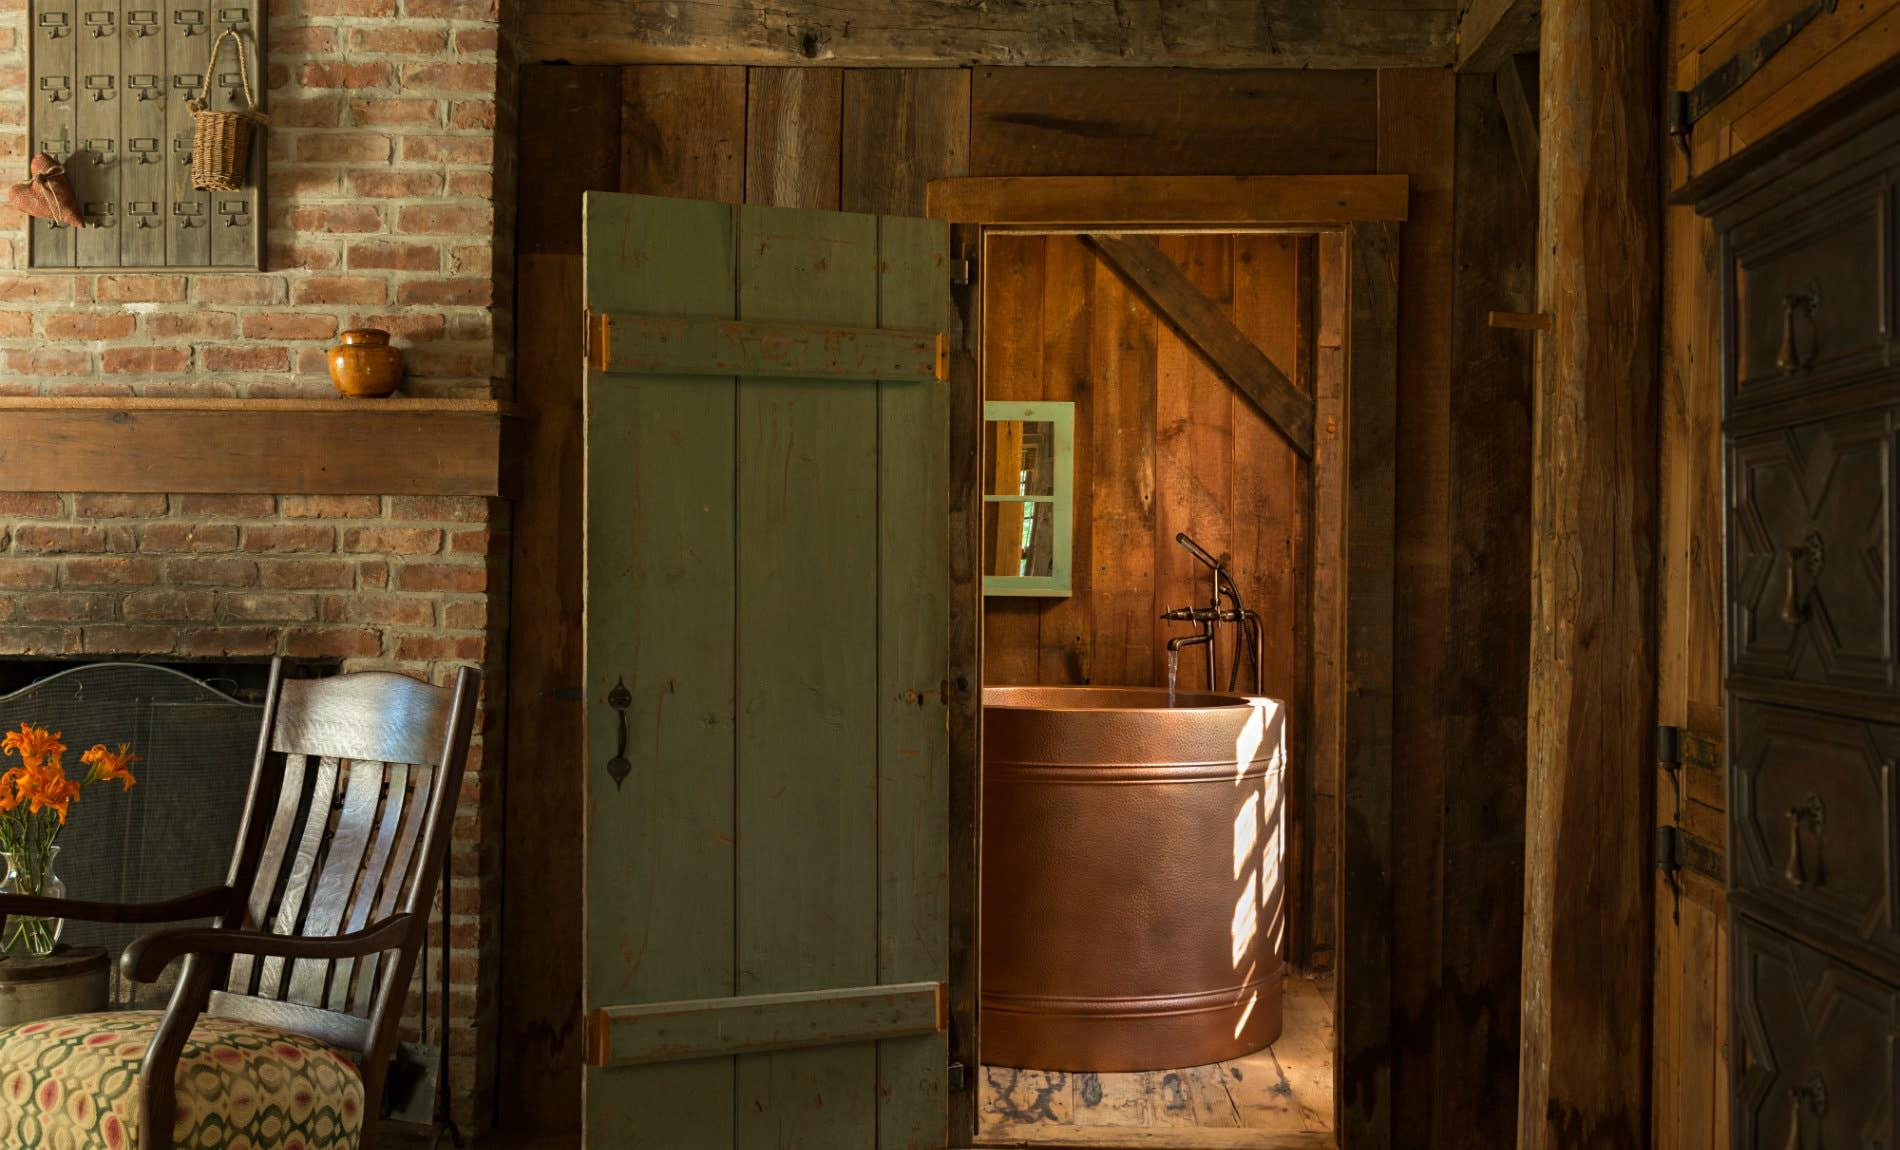 Rustic wood and brick room with view of round copper tub through an open green door